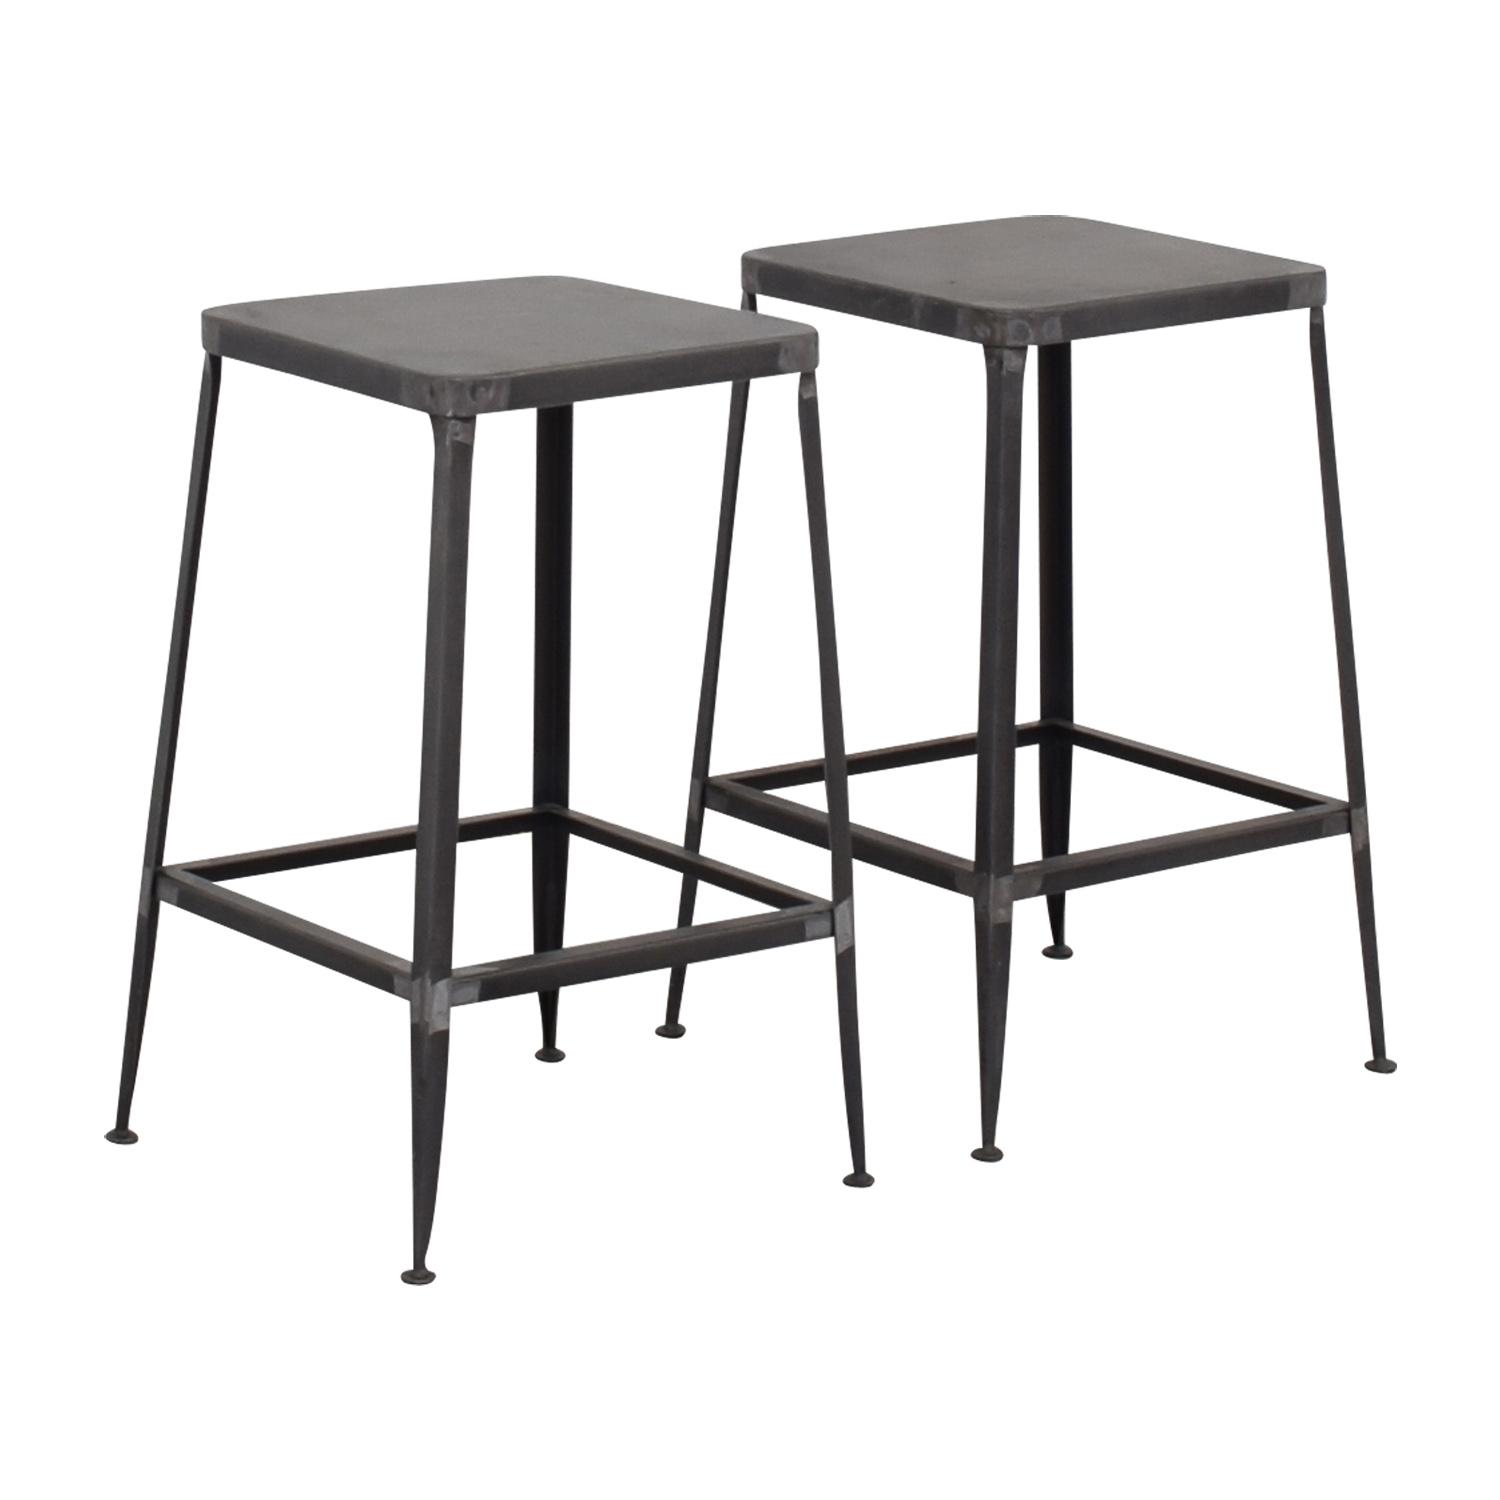 CB2 Flint Steel Counter Stools / Stools